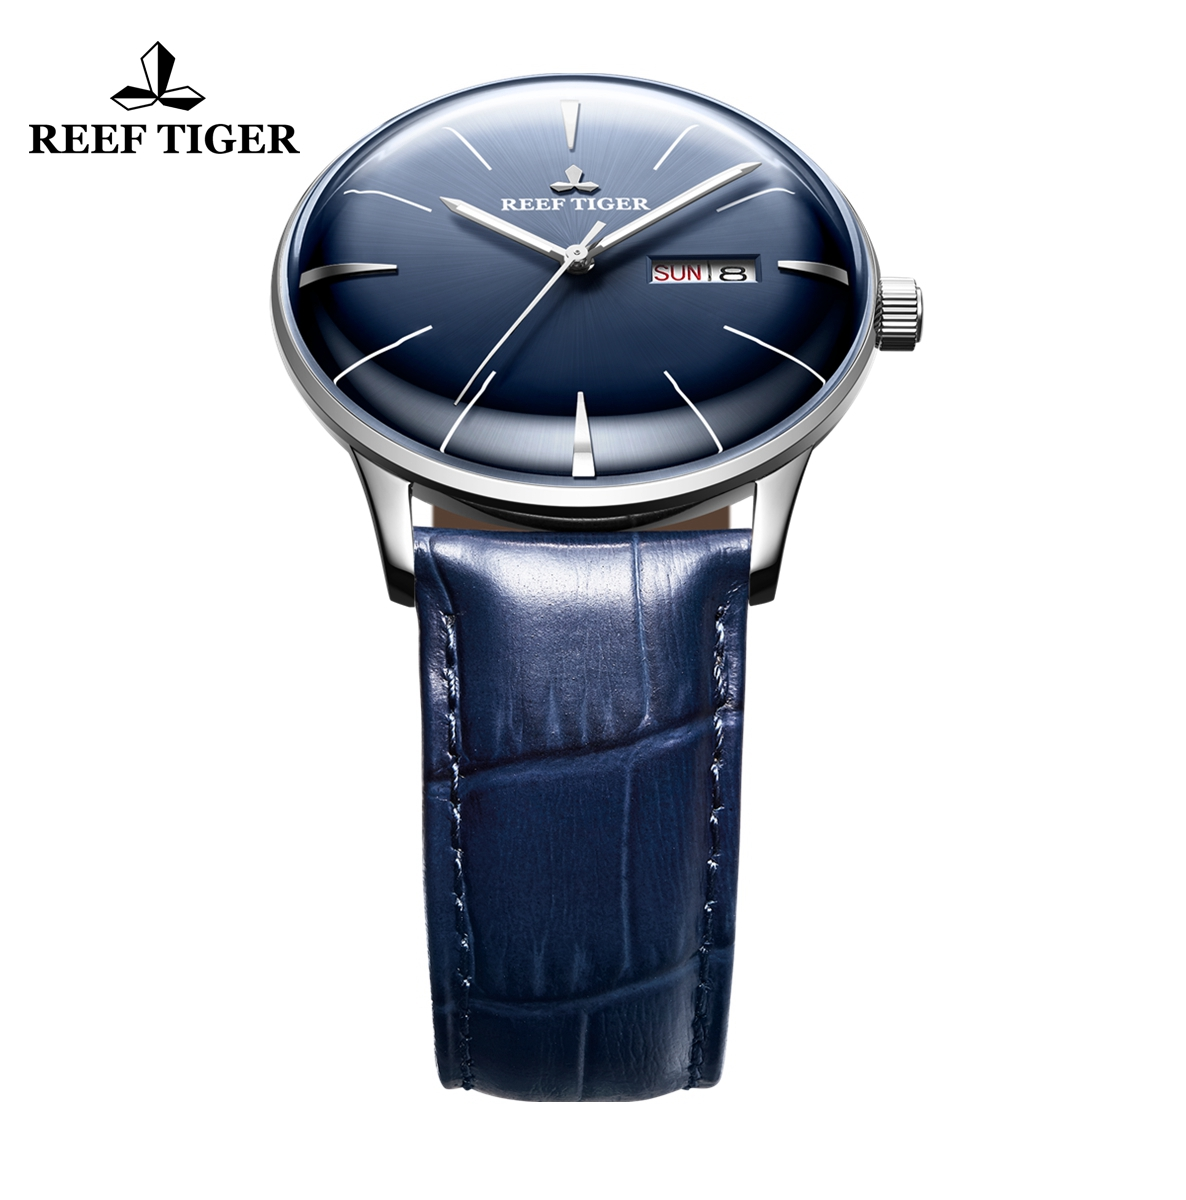 Reef Tiger Classic Heritor Automatic Watch Blue Dial Leather Strap For Men Watches RGA8238-YLL